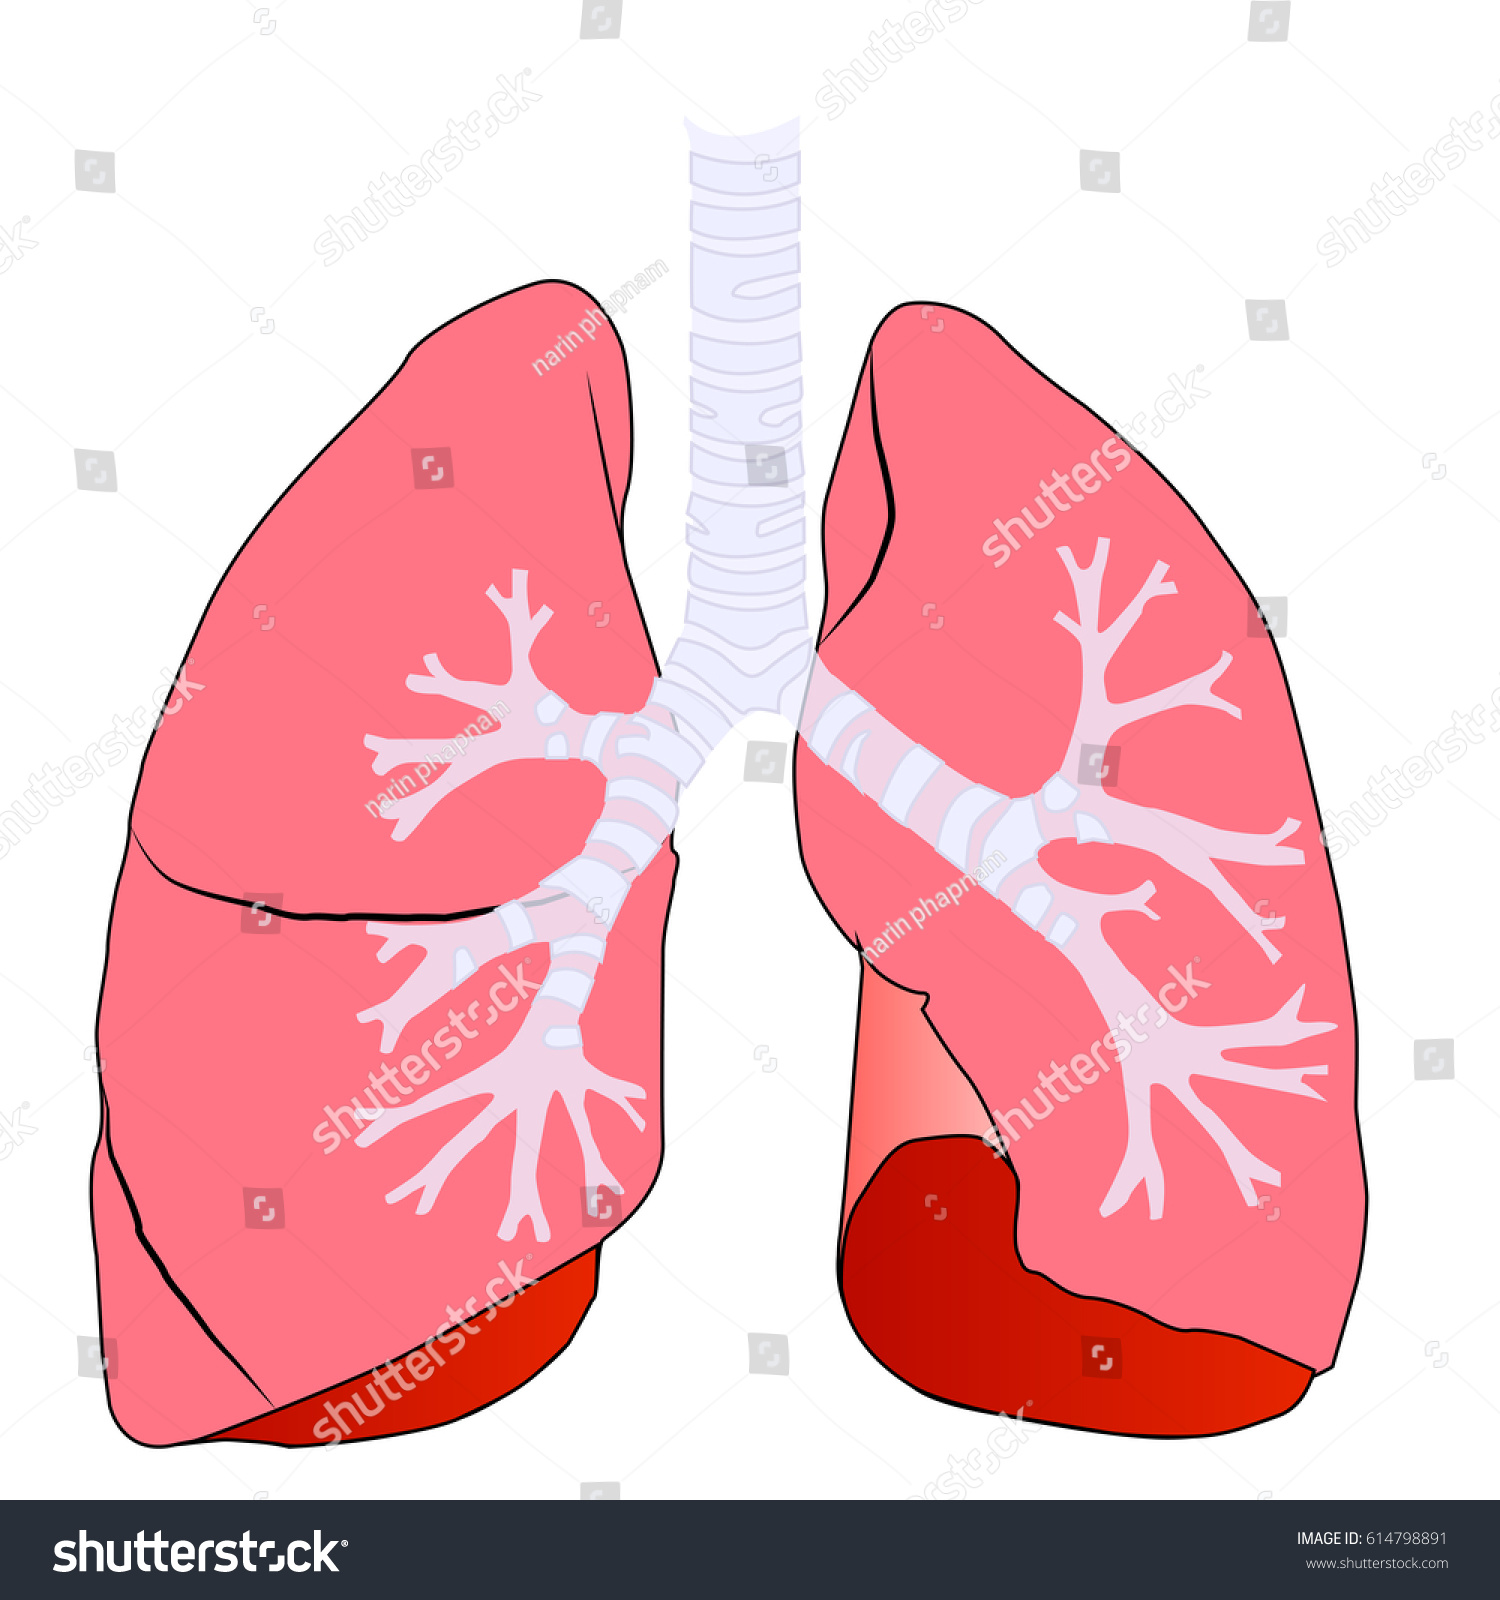 Anatomy Left Right Lung Human Vector Stock Vector 614798891 ...